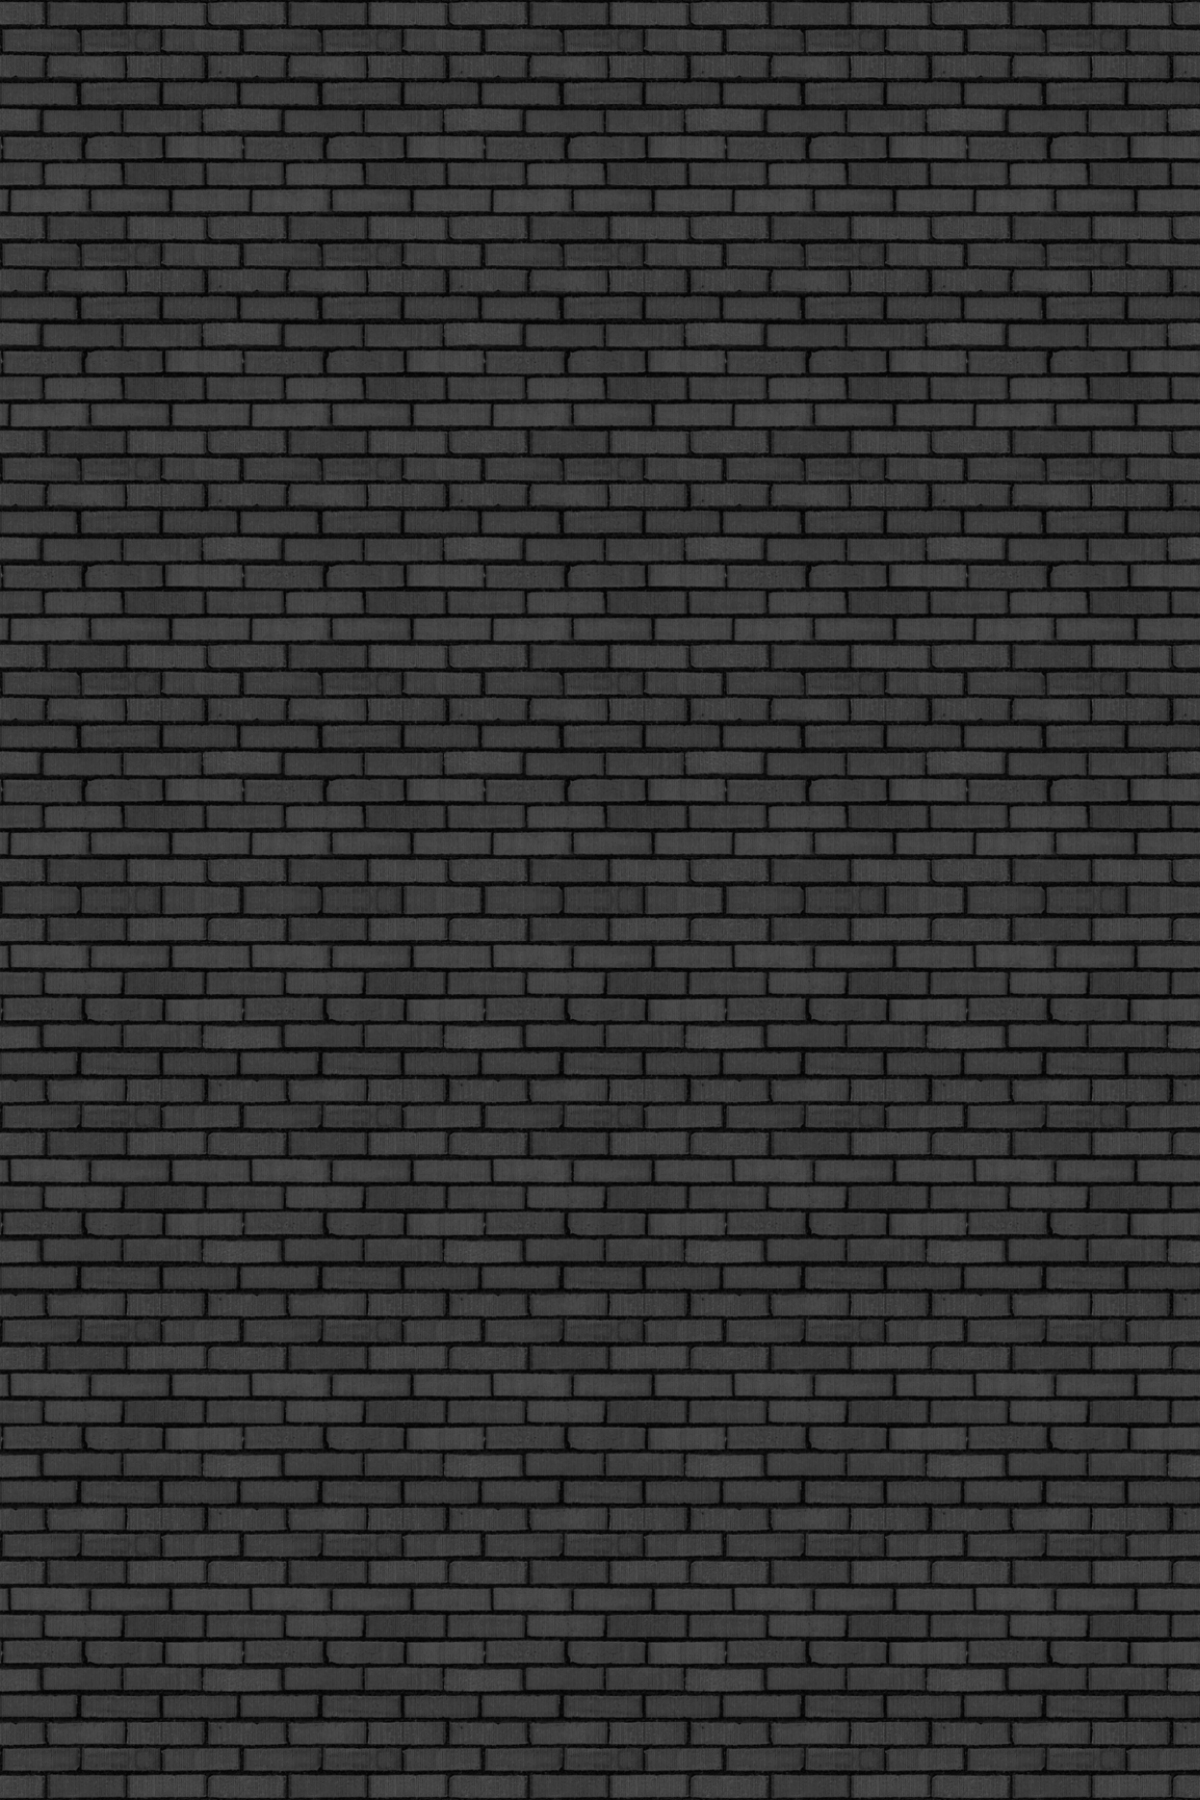 bricks_dark